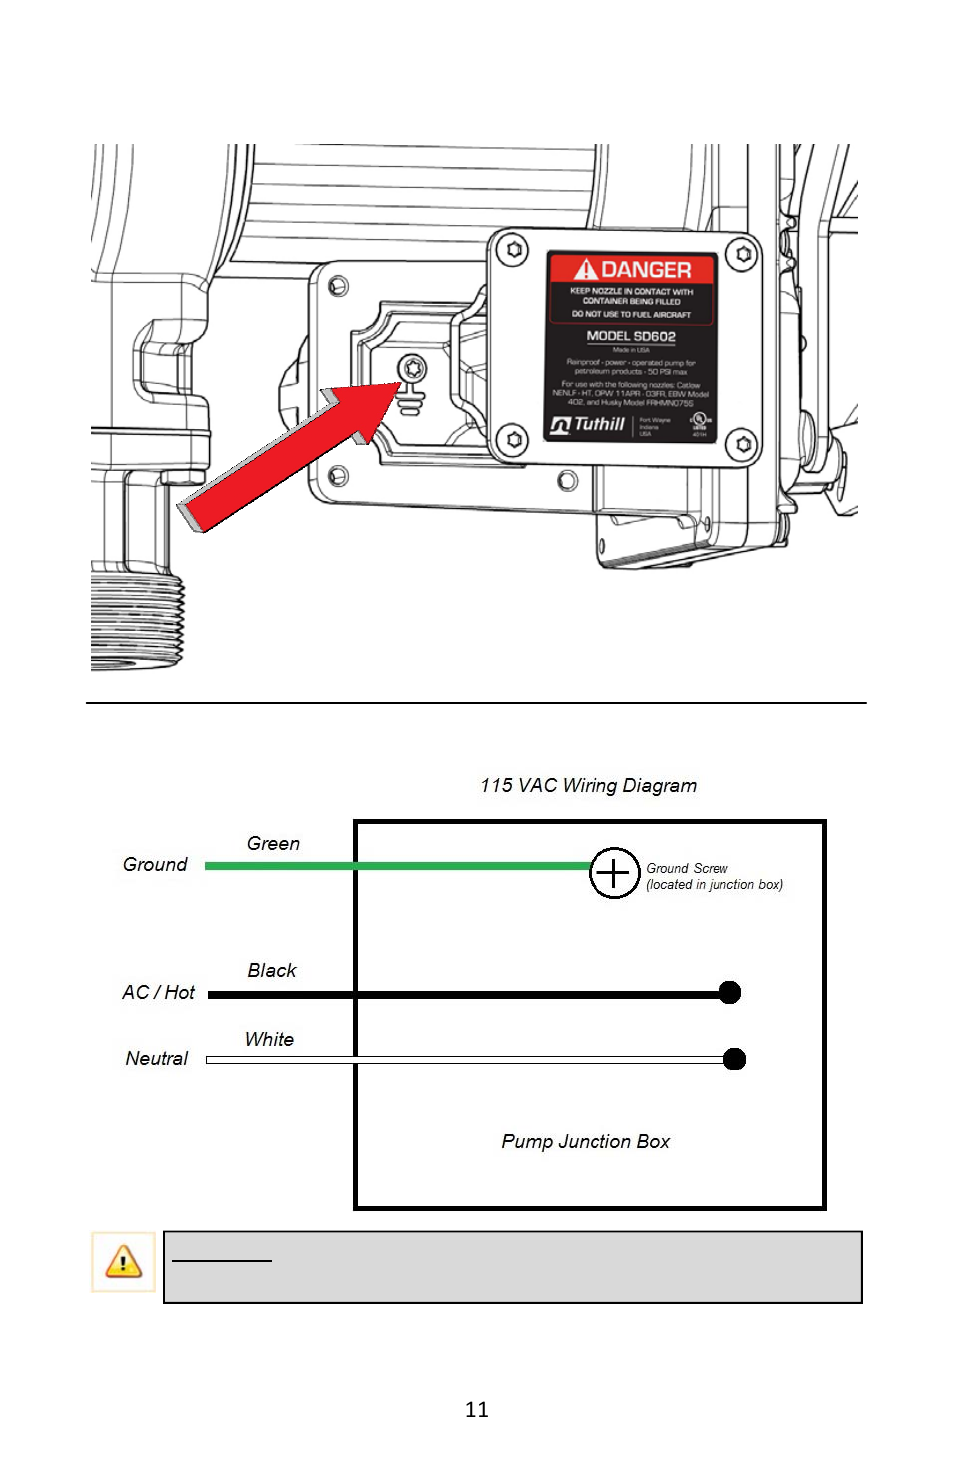 Ac Wiring Diagram Pump Junction Box Fill Rite Fr600g Series Phone Wire Transfer Pumps User Manual Page 11 80